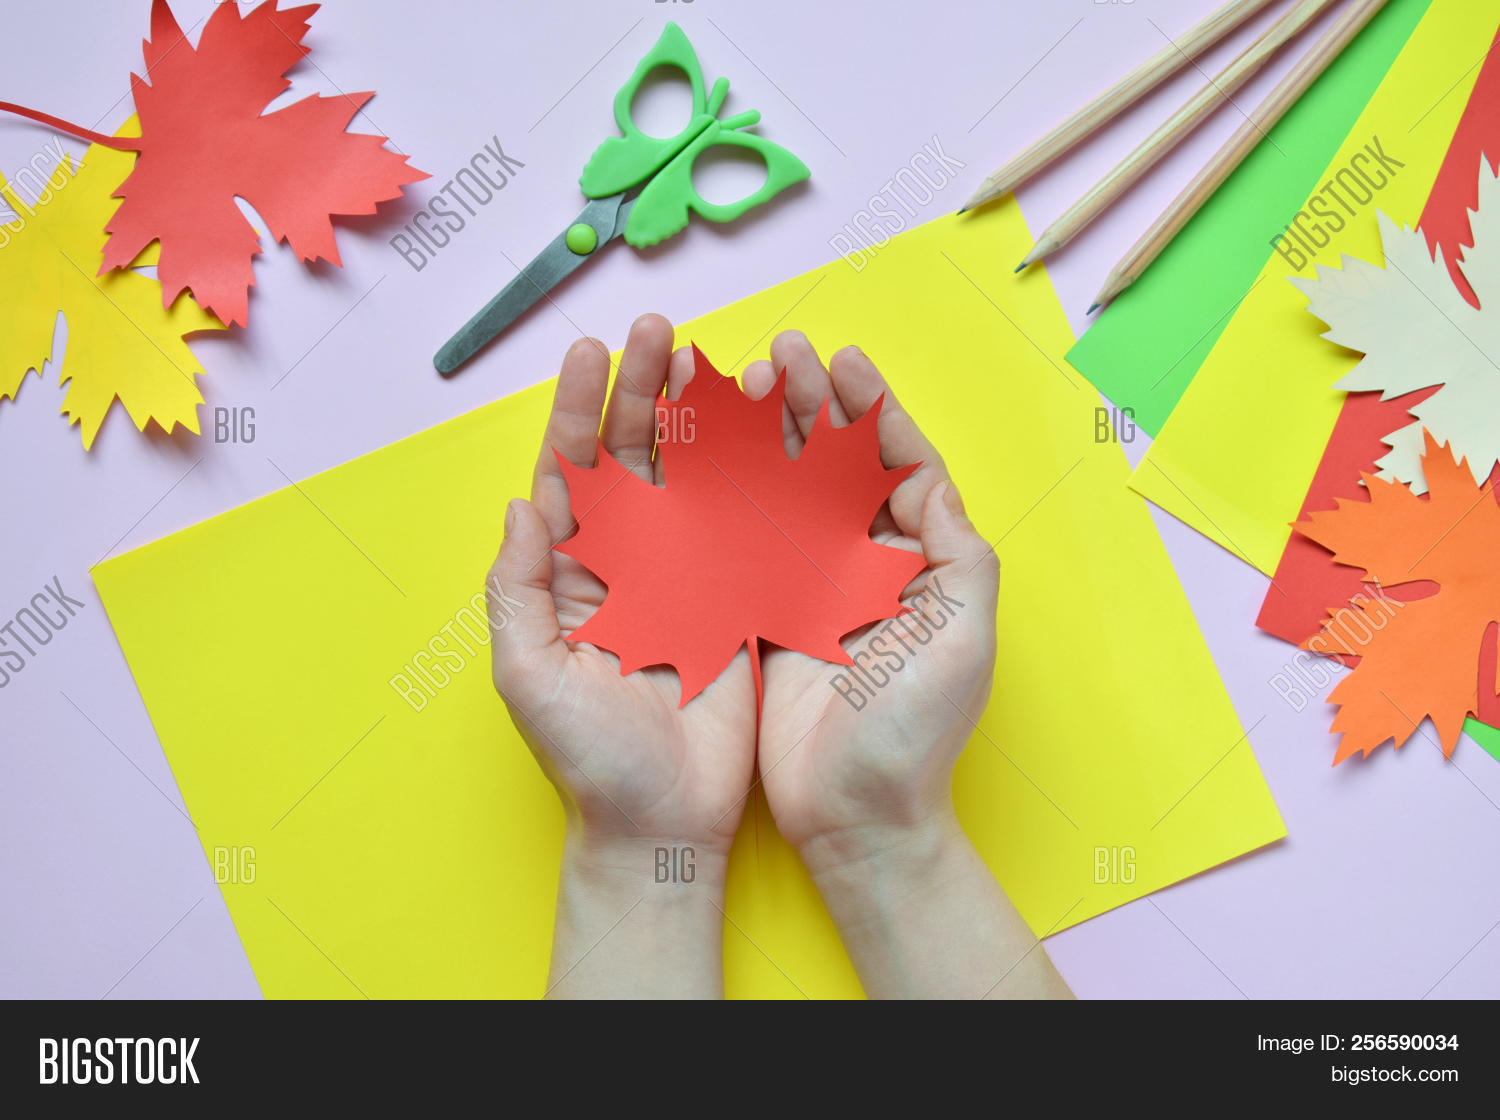 Making Maple Leaf Image & Photo (Free Trial) | Bigstock